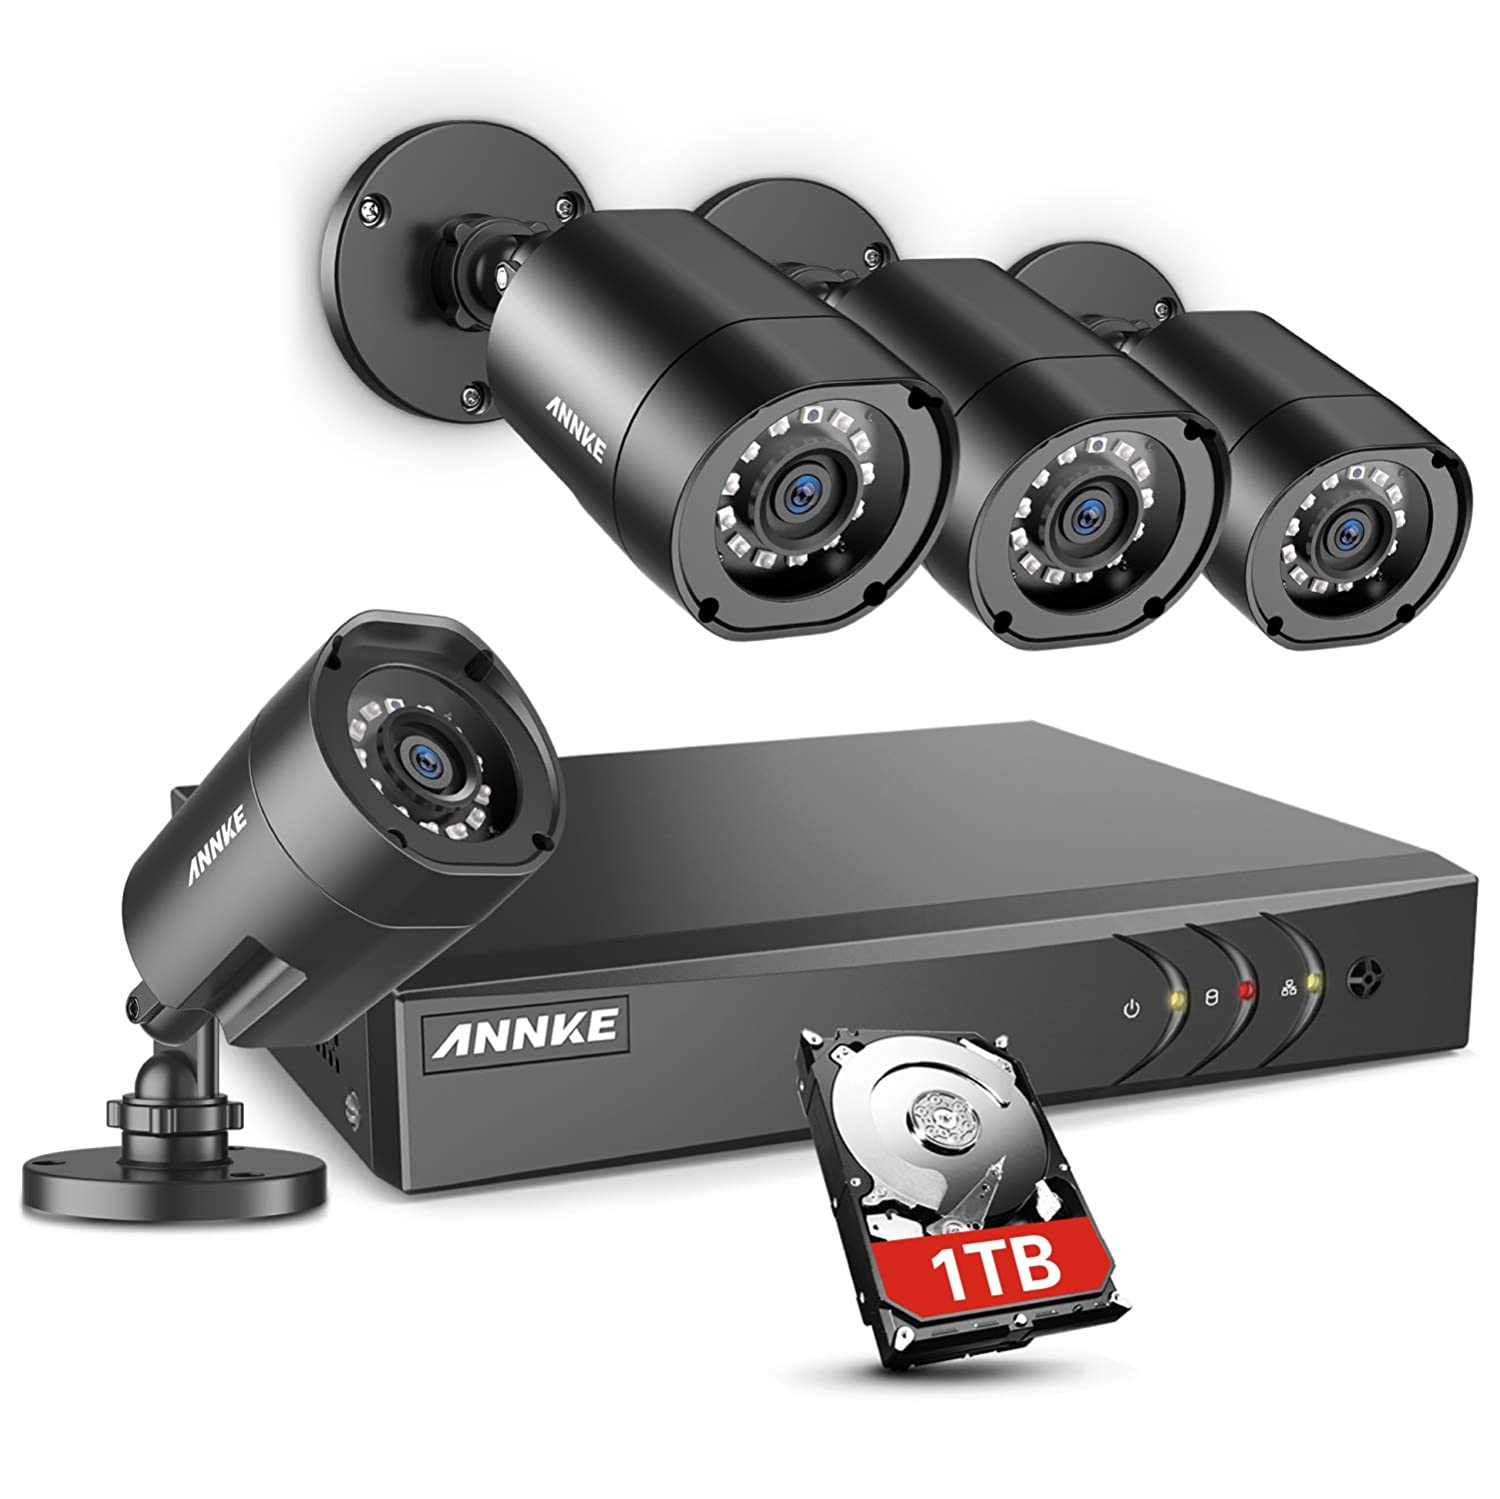 ANNKE 8CH H.264 Security Camera System with 4pcs 1080P 1920TVL Wired CCTV Cameras, IP66 Weatherproof for Indoor Outdoor use, Motion Alert Remote Access, 1TB Hard Drive Included